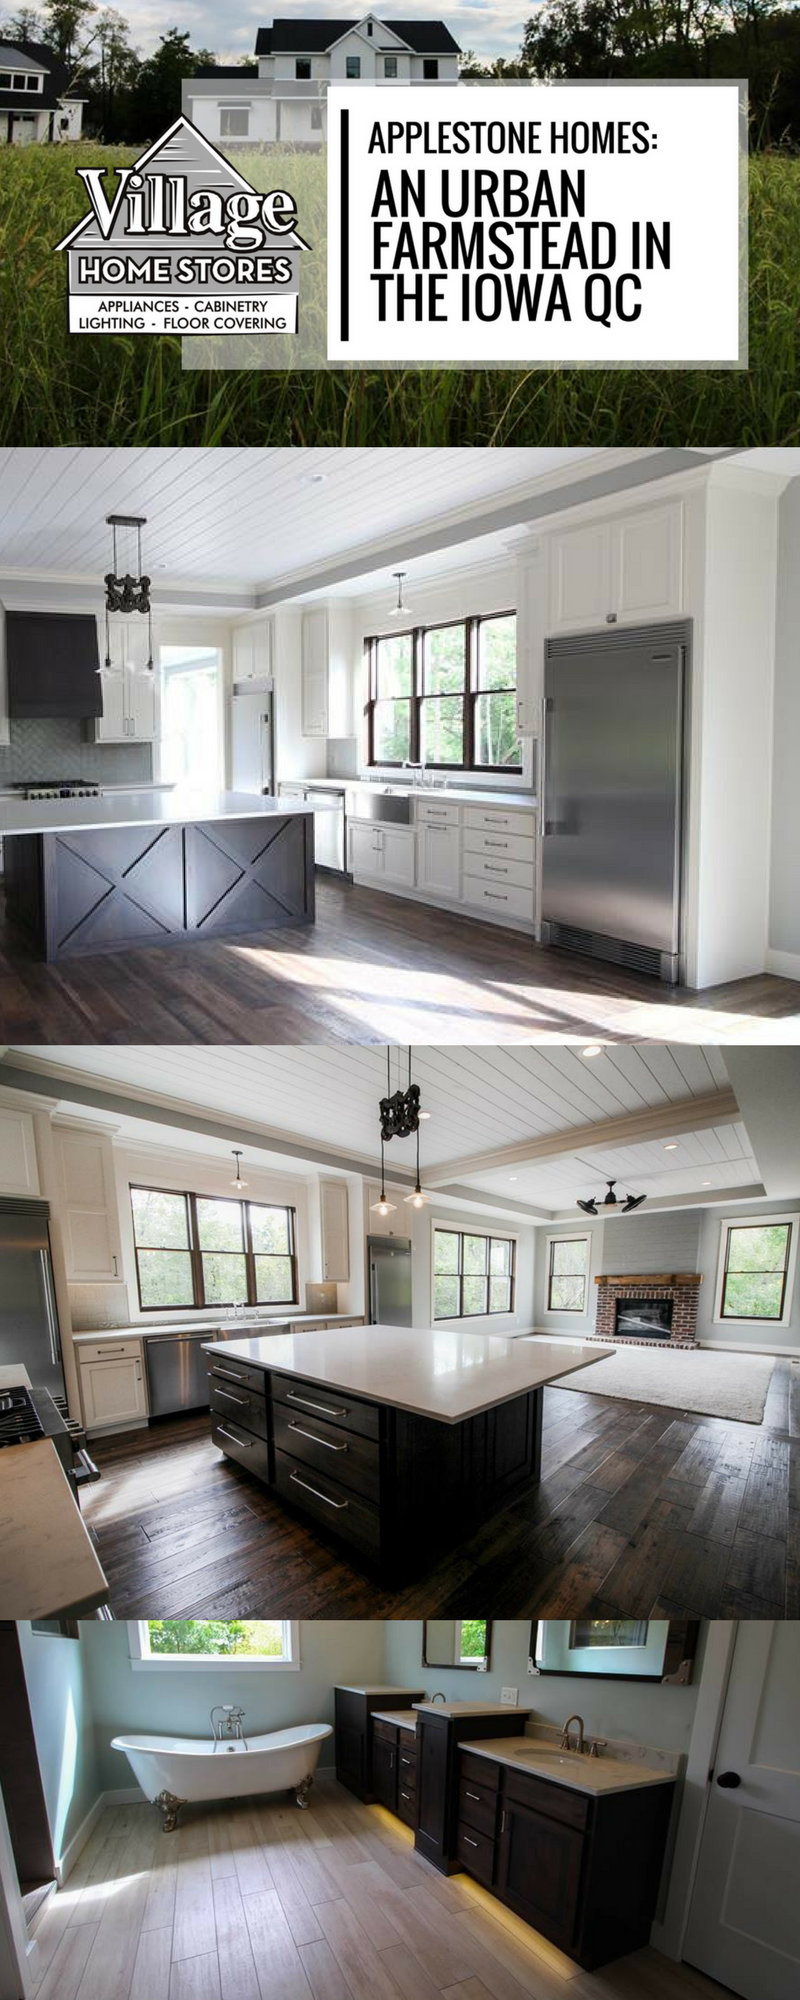 Kitchen And Bath Design Quad Cities Modern Farmhouse Kitchen Perfection In This Urban Frmstead Built By